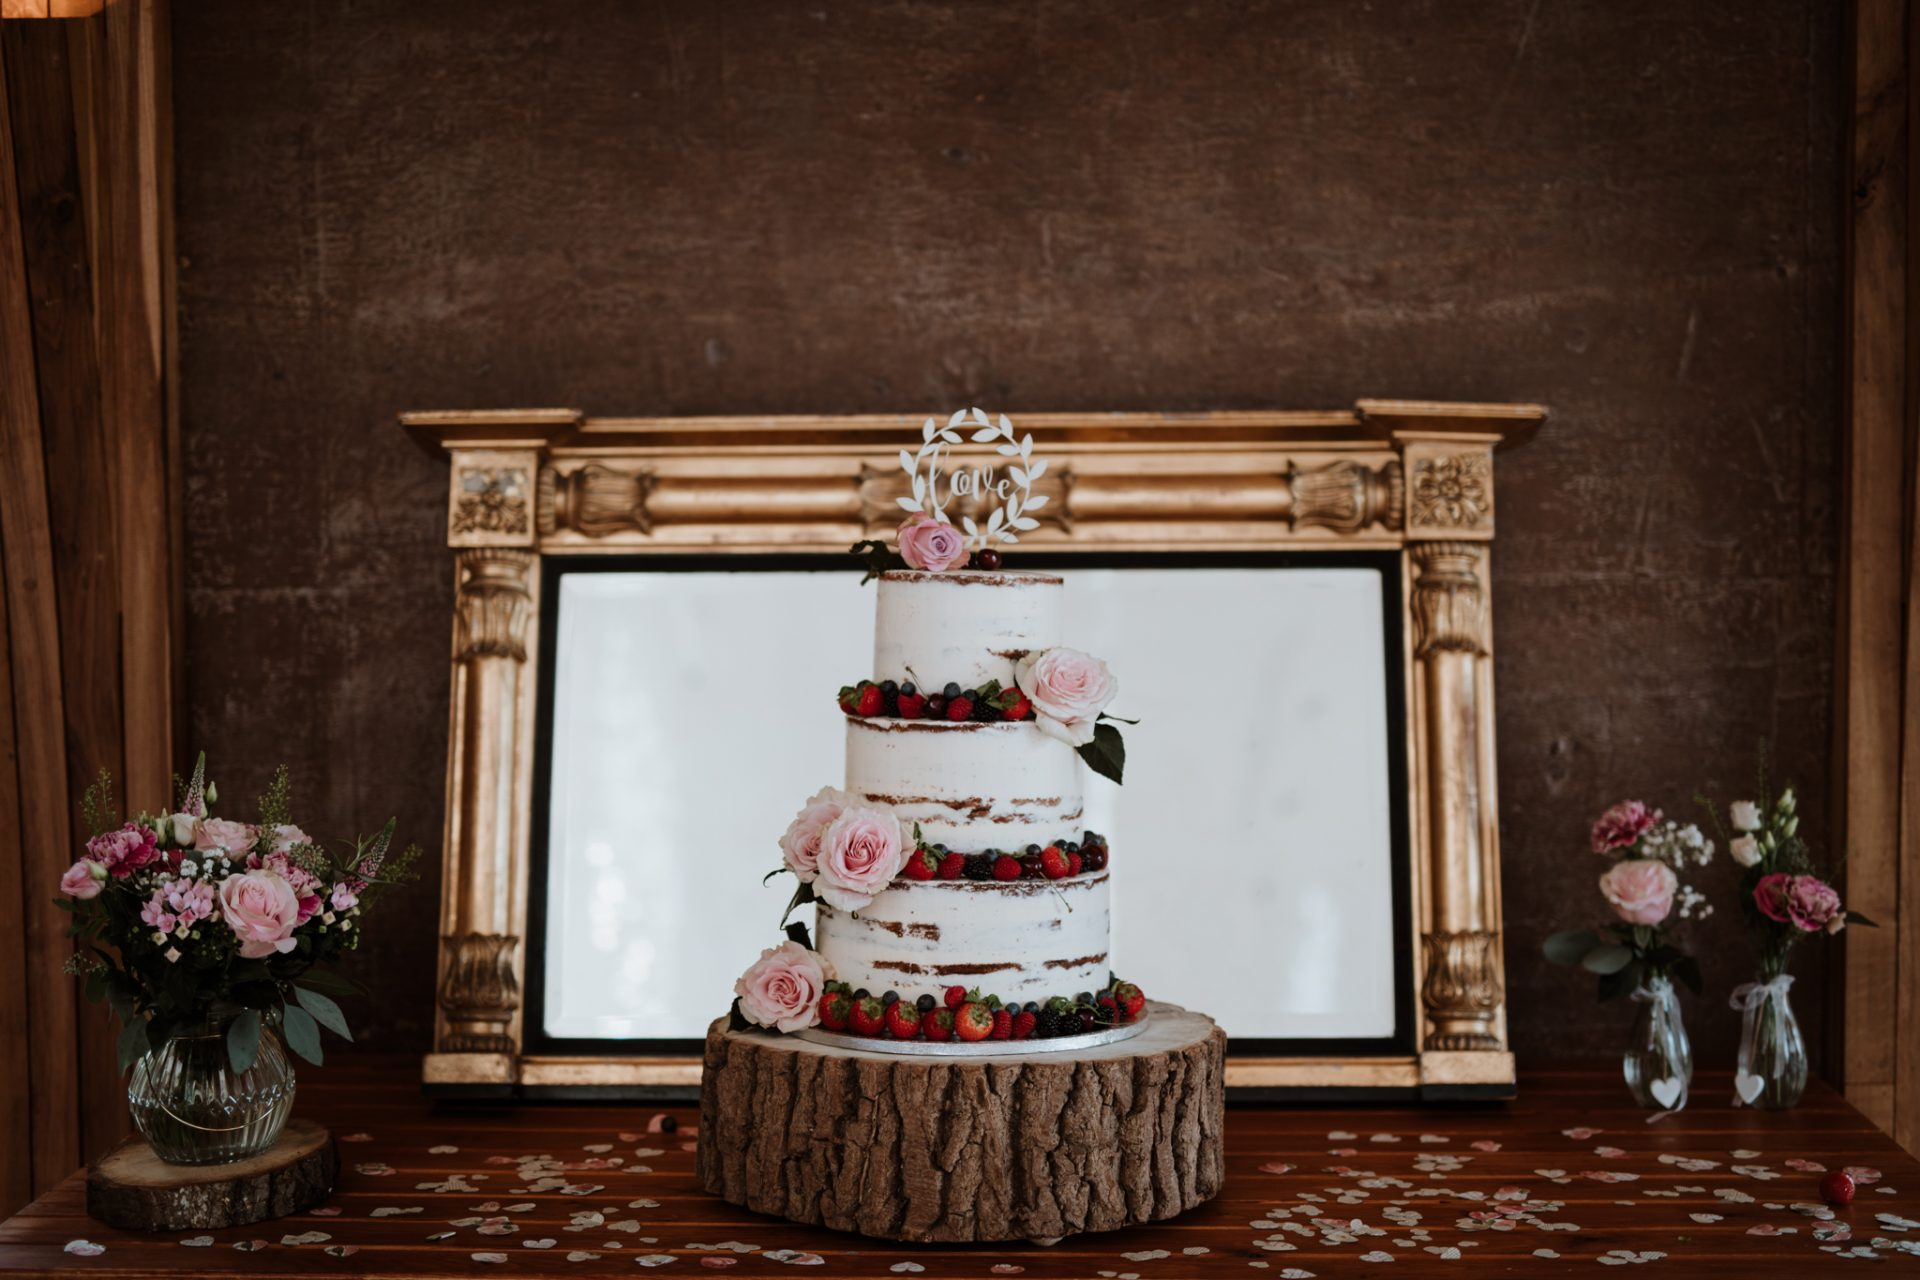 naked wedding cake in front of ornate gold mirror